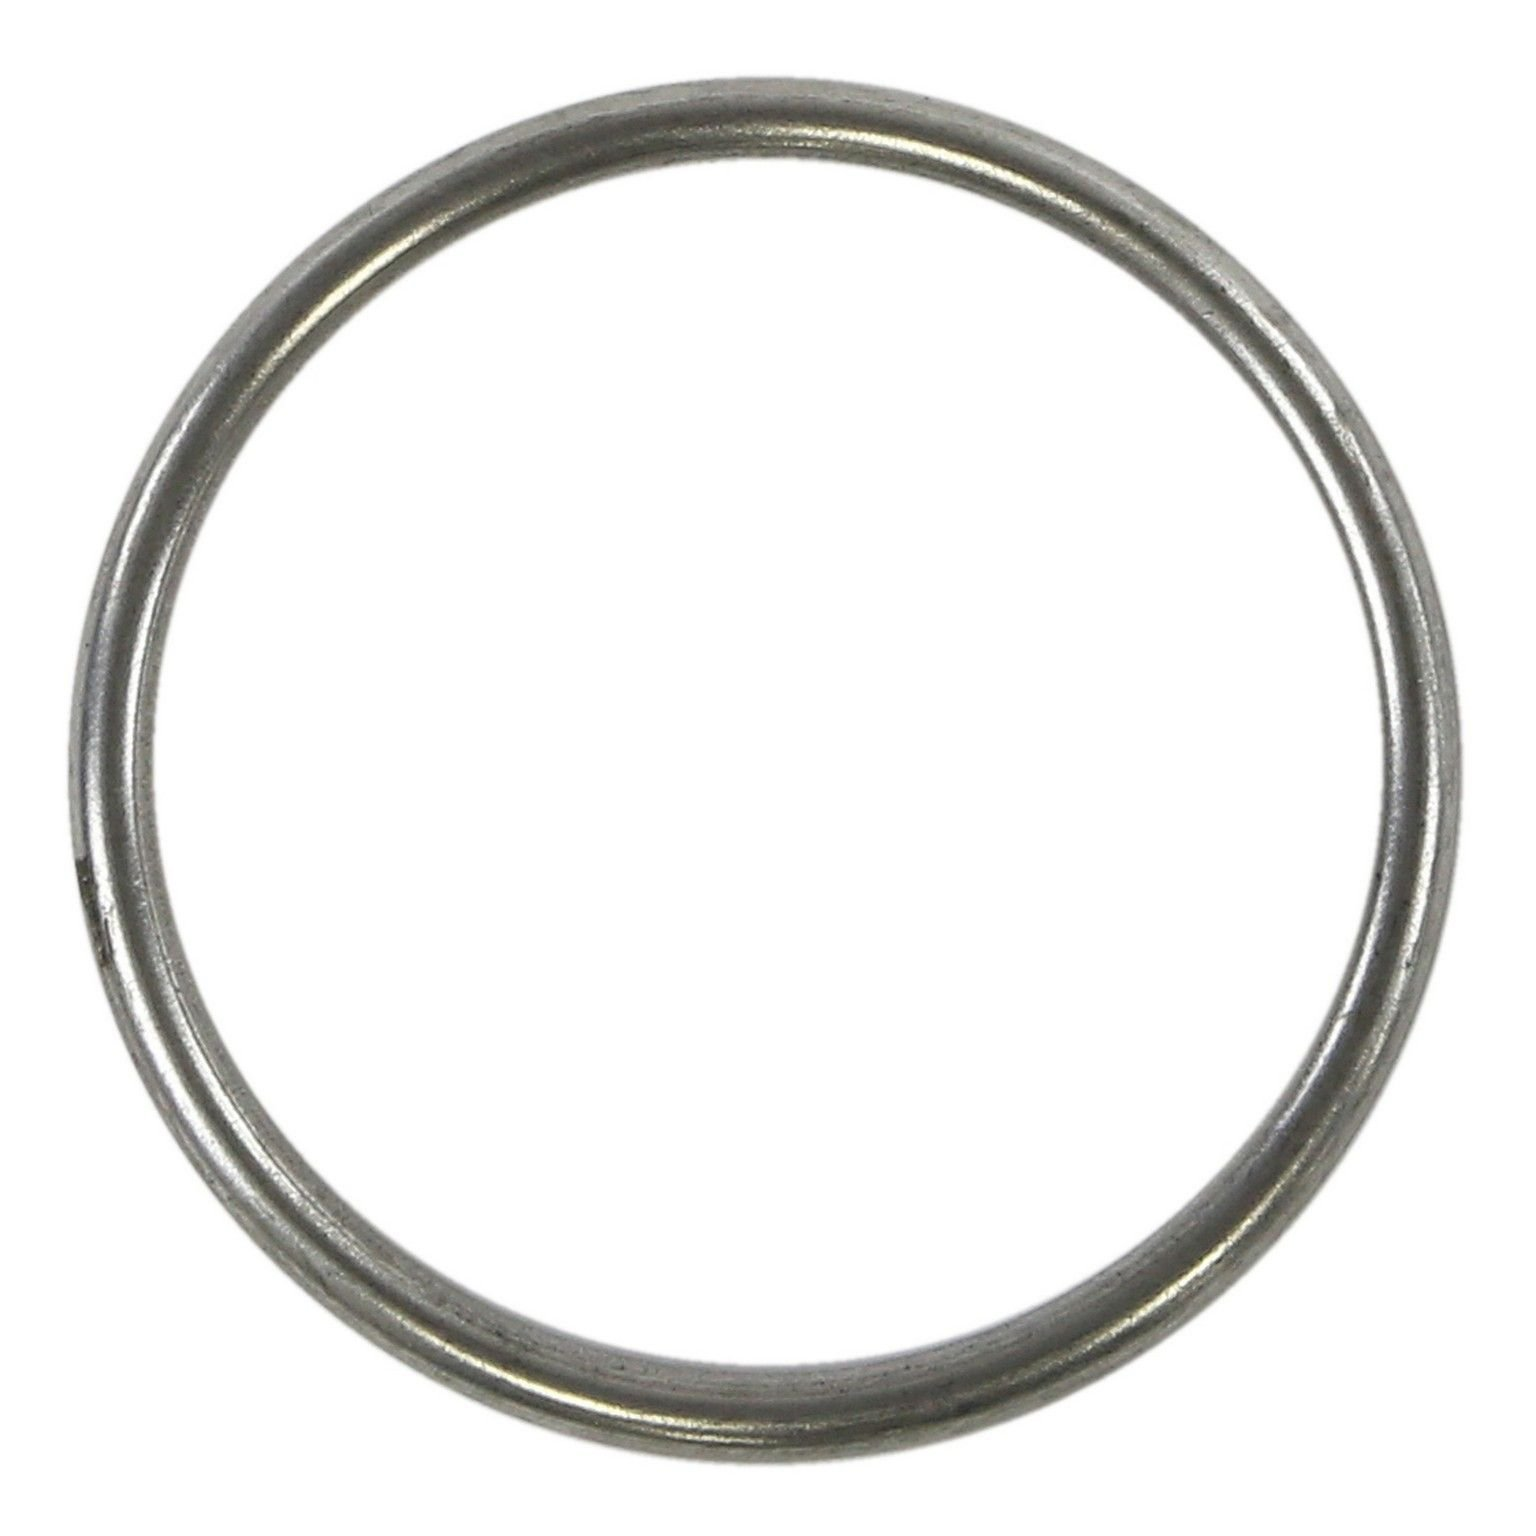 1997 Acura CL Exhaust Pipe Flange Gasket - N/A 6 Cyl 3.0L (Walker 31354)